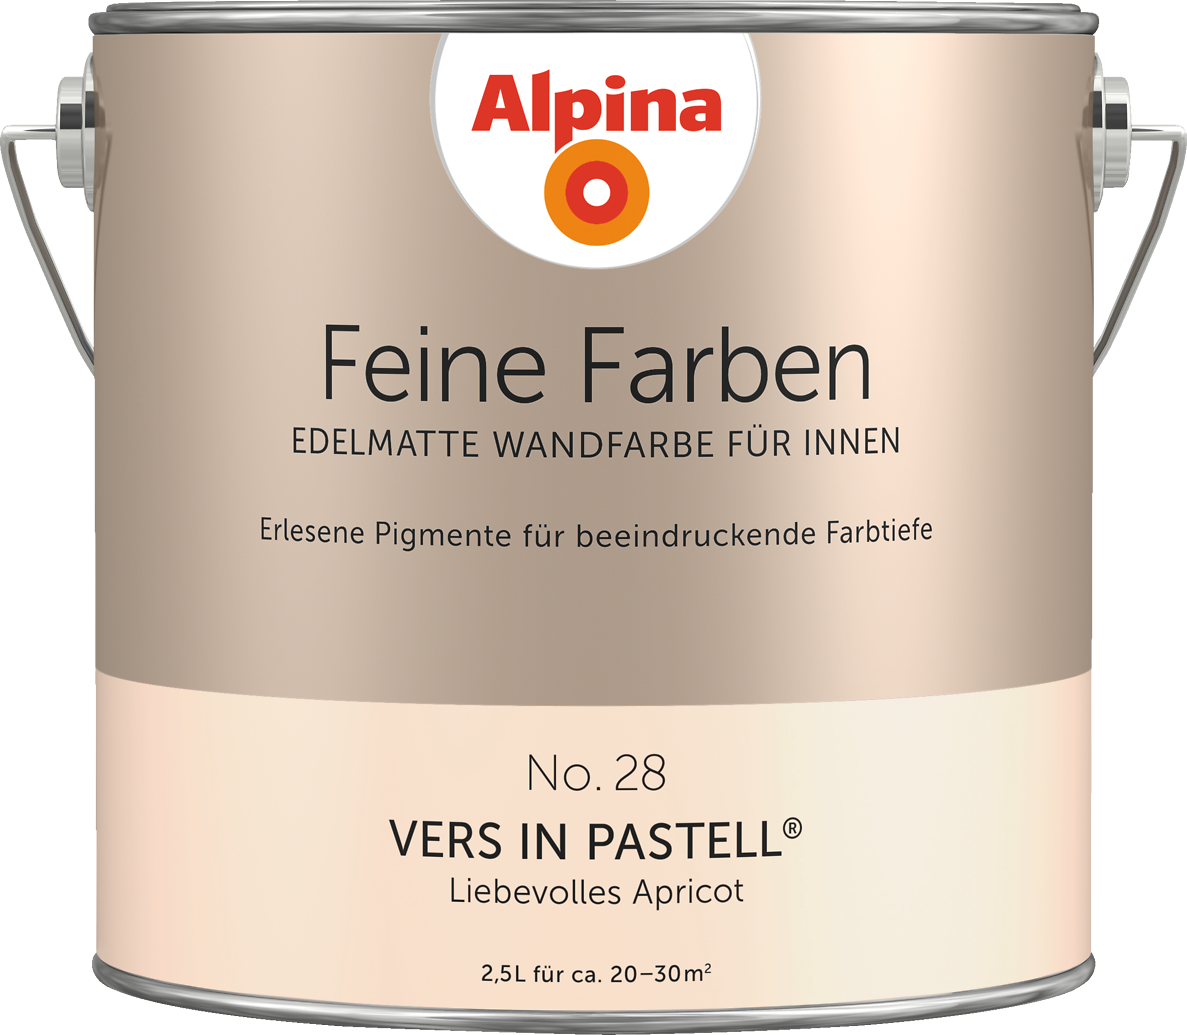 premium wandfarbe orange apricot alpina feine farben vers in pastell alpina farben. Black Bedroom Furniture Sets. Home Design Ideas